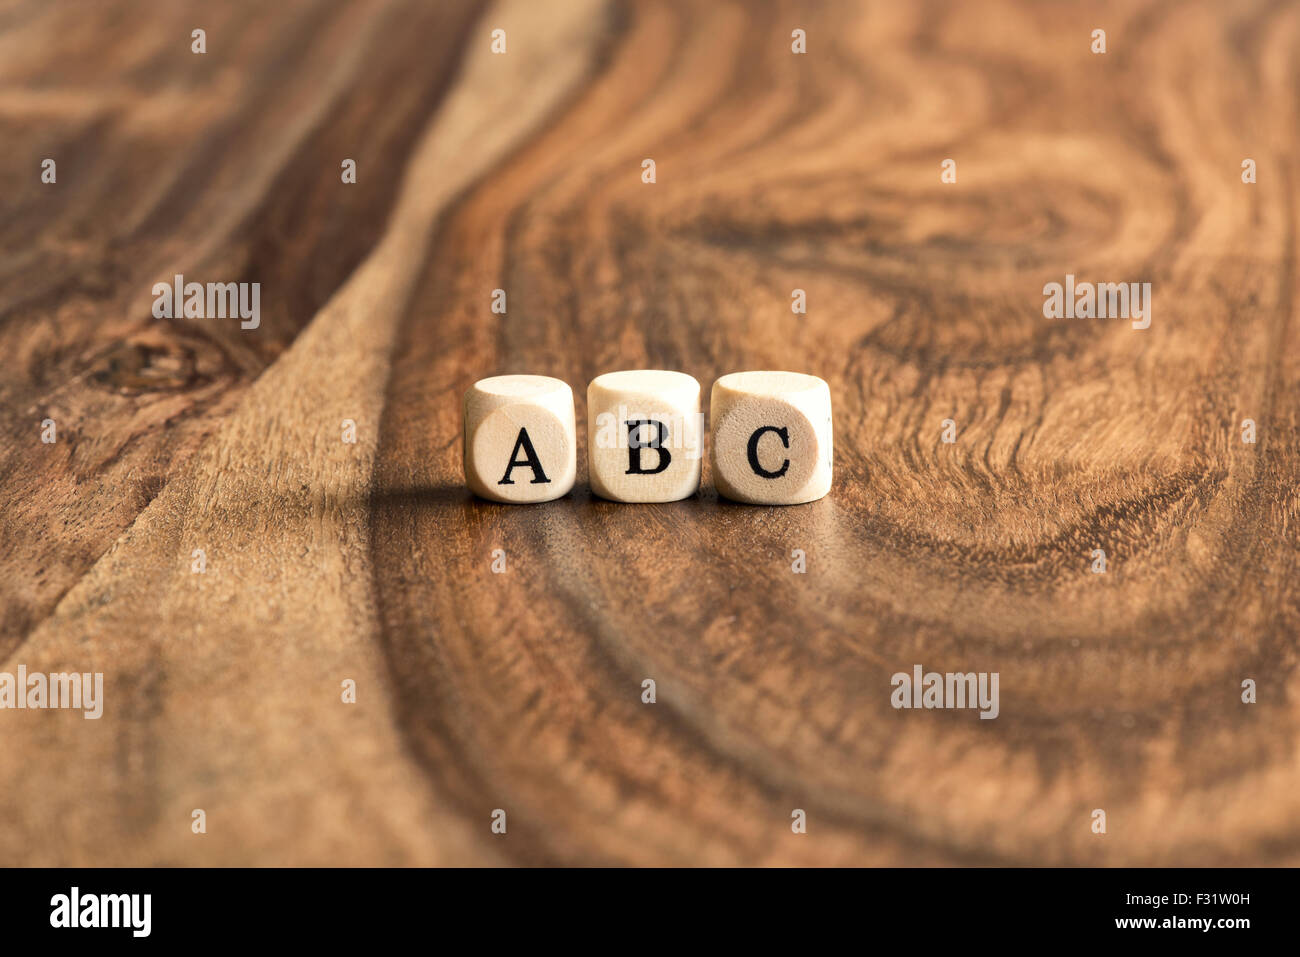 Blocs de construction ABC sur fond de bois Photo Stock